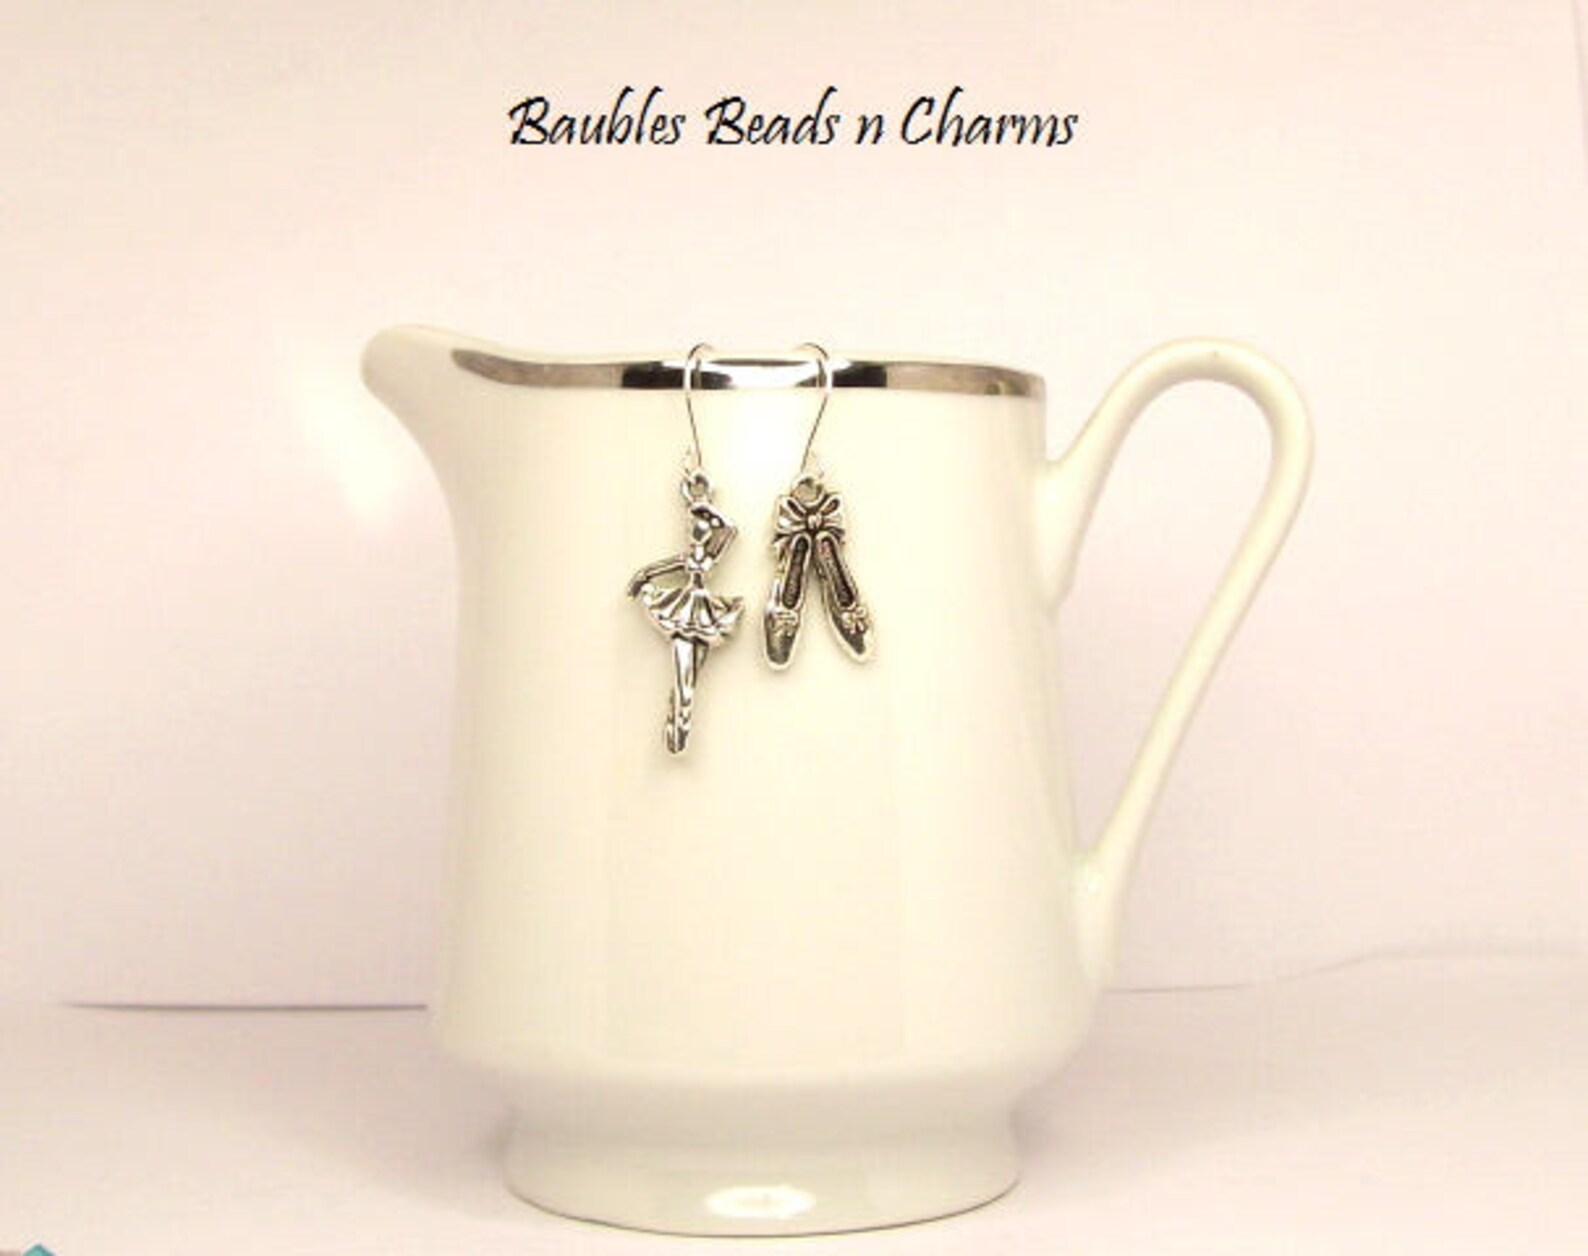 ballet earrings, ballet charm earrings, ballerina earrings, ballerina charm earrings, charm earrings, ballerina asymmetrical ear